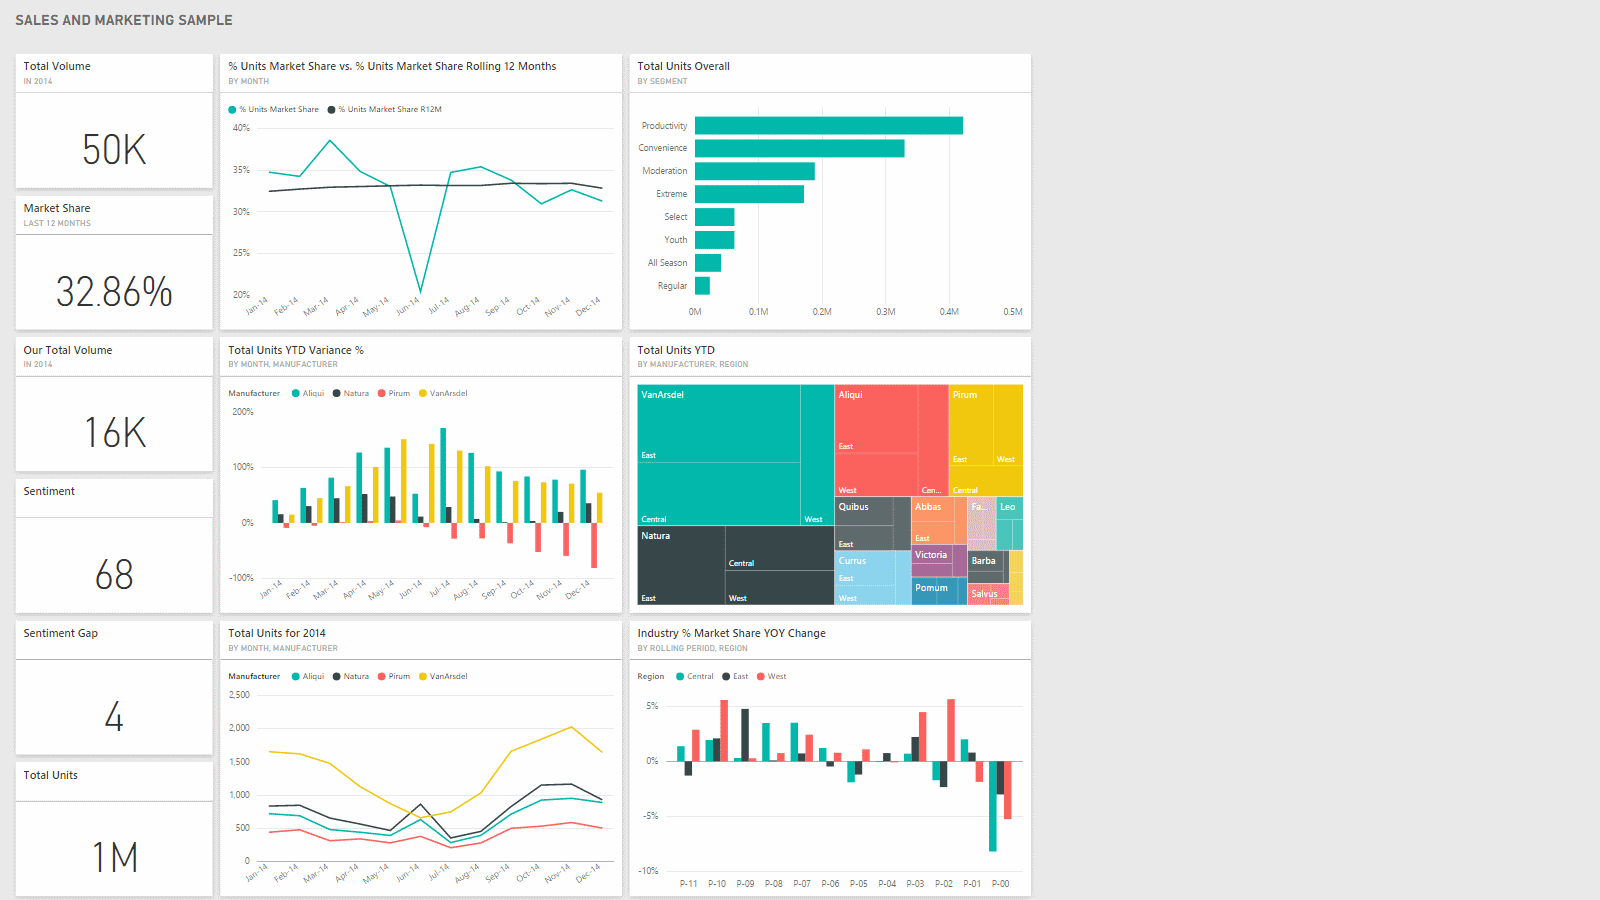 Dashboard: SALES AND MARKETING